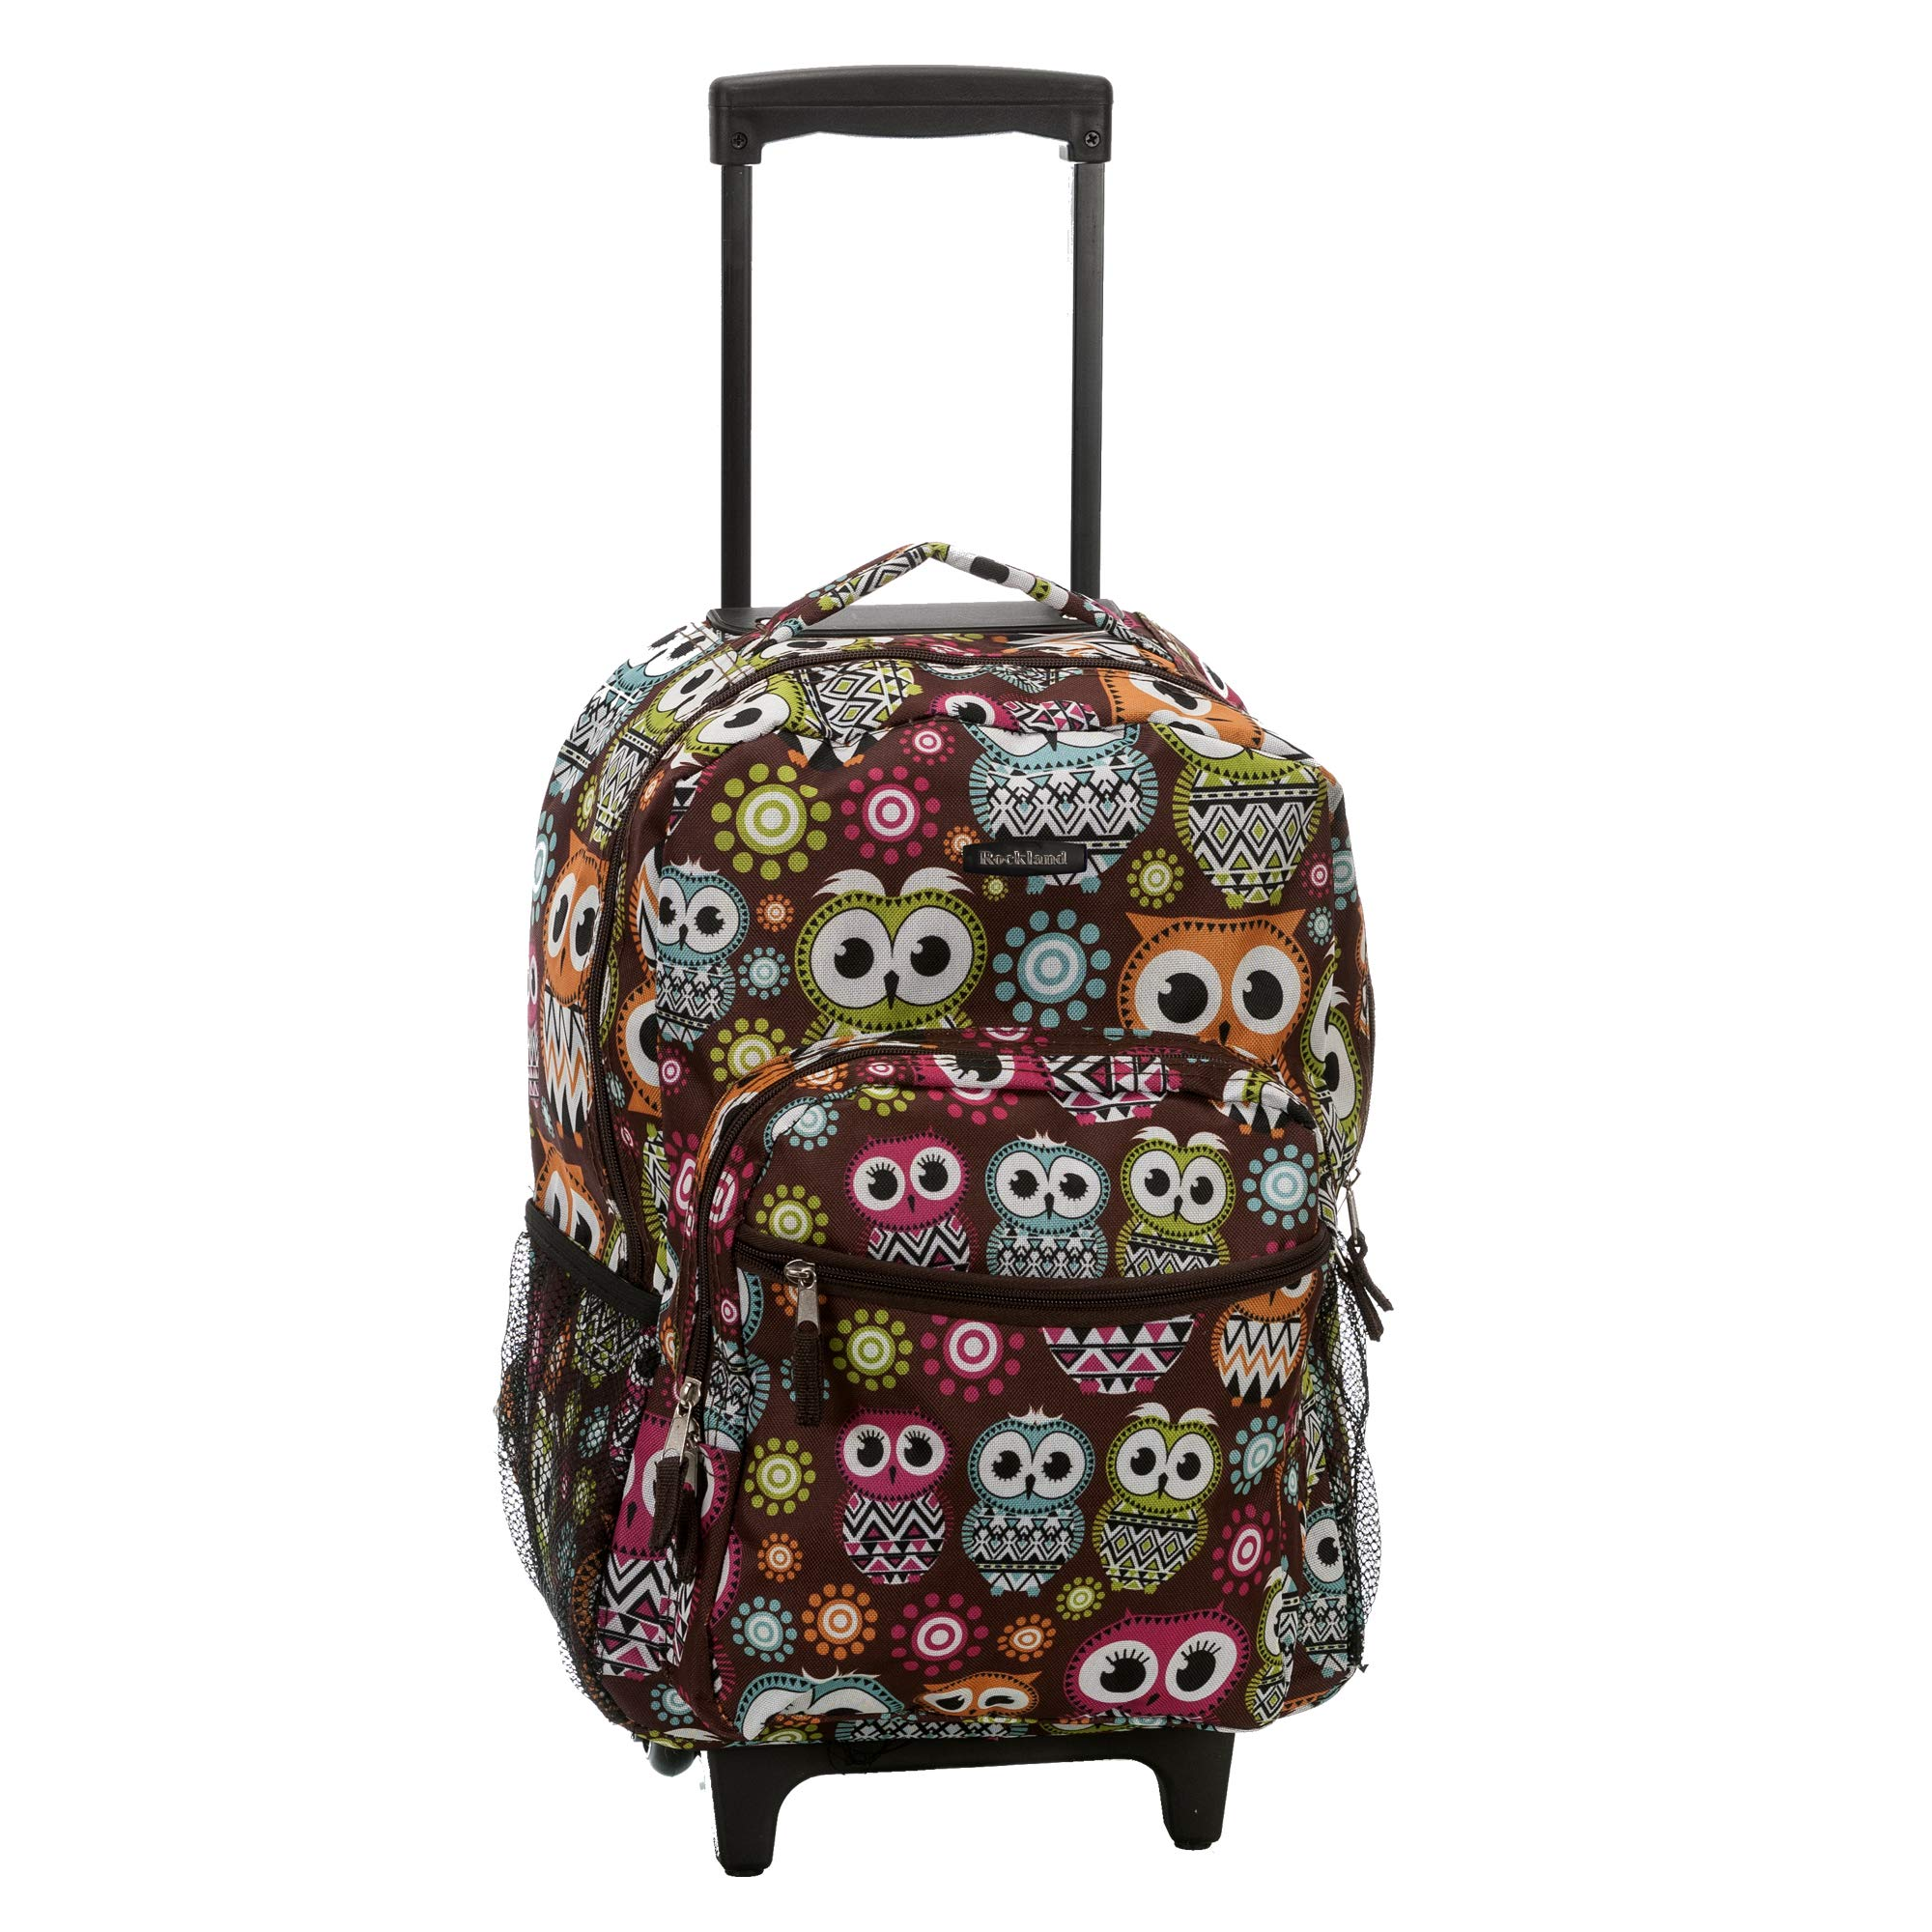 Rockland 17 Inch Rolling Backpack, Owl, One Size by Rockland